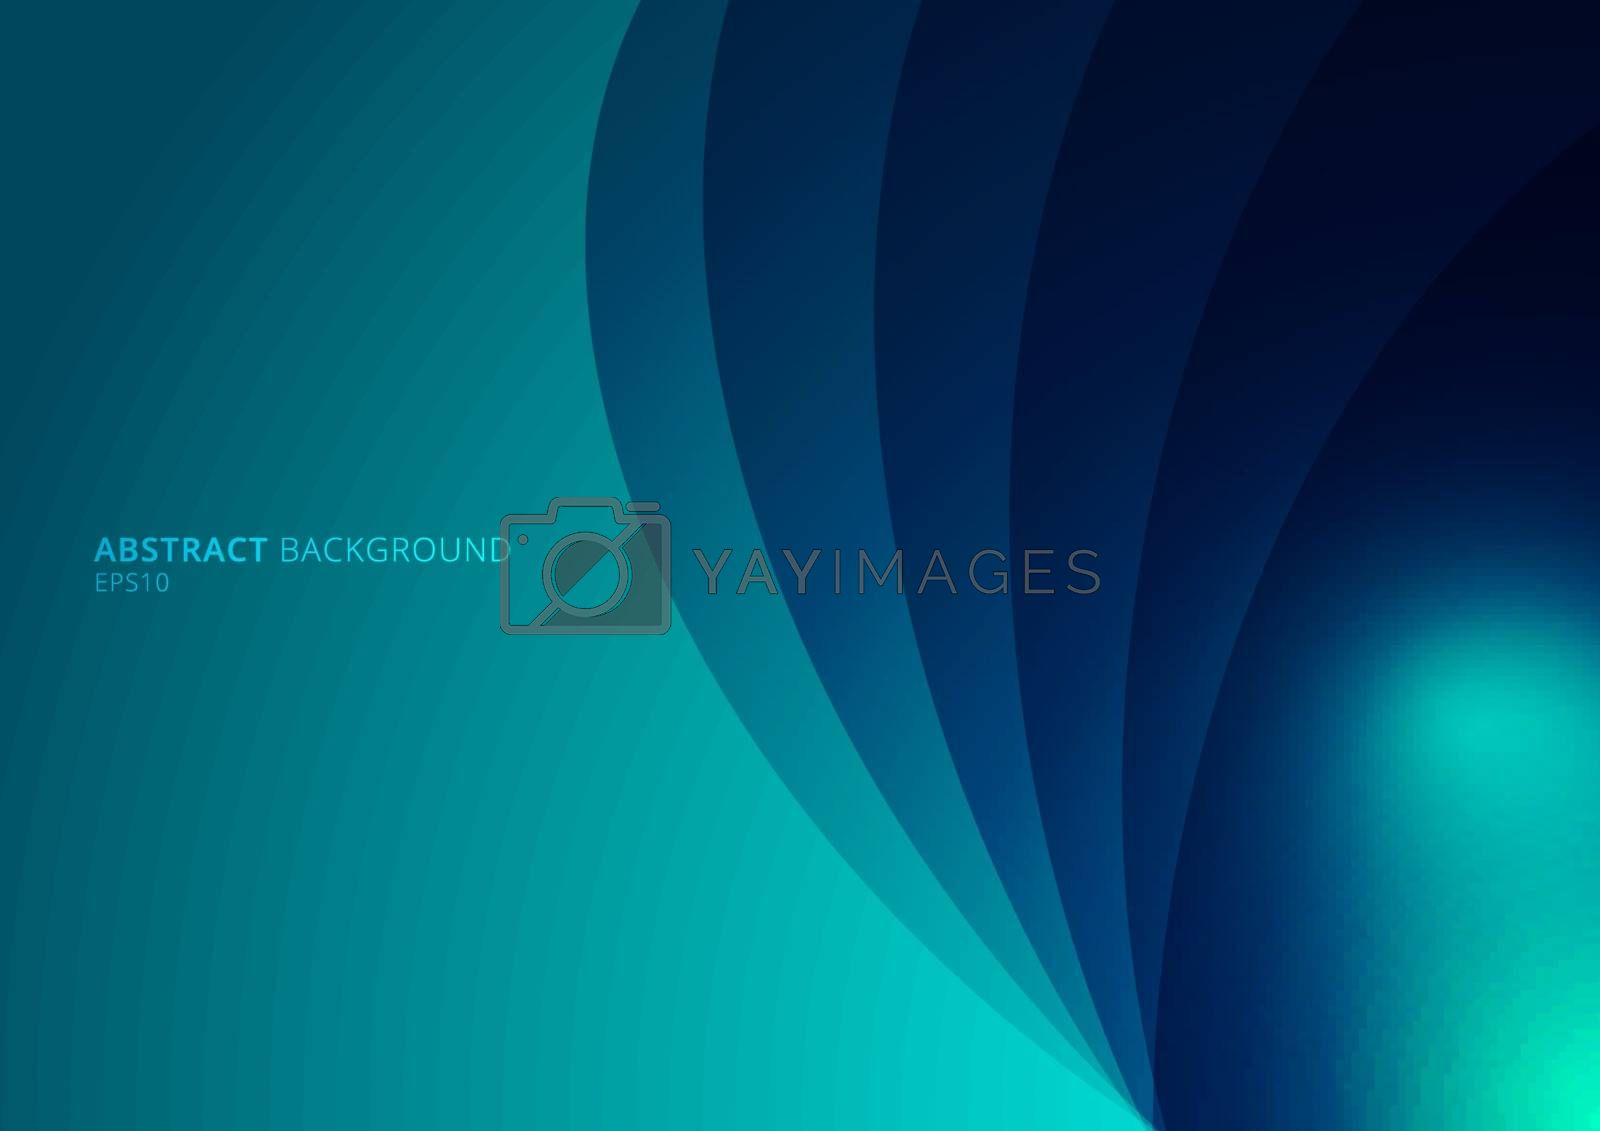 Abstract blue background curved layers with shadow and space for your text. Vector illustration